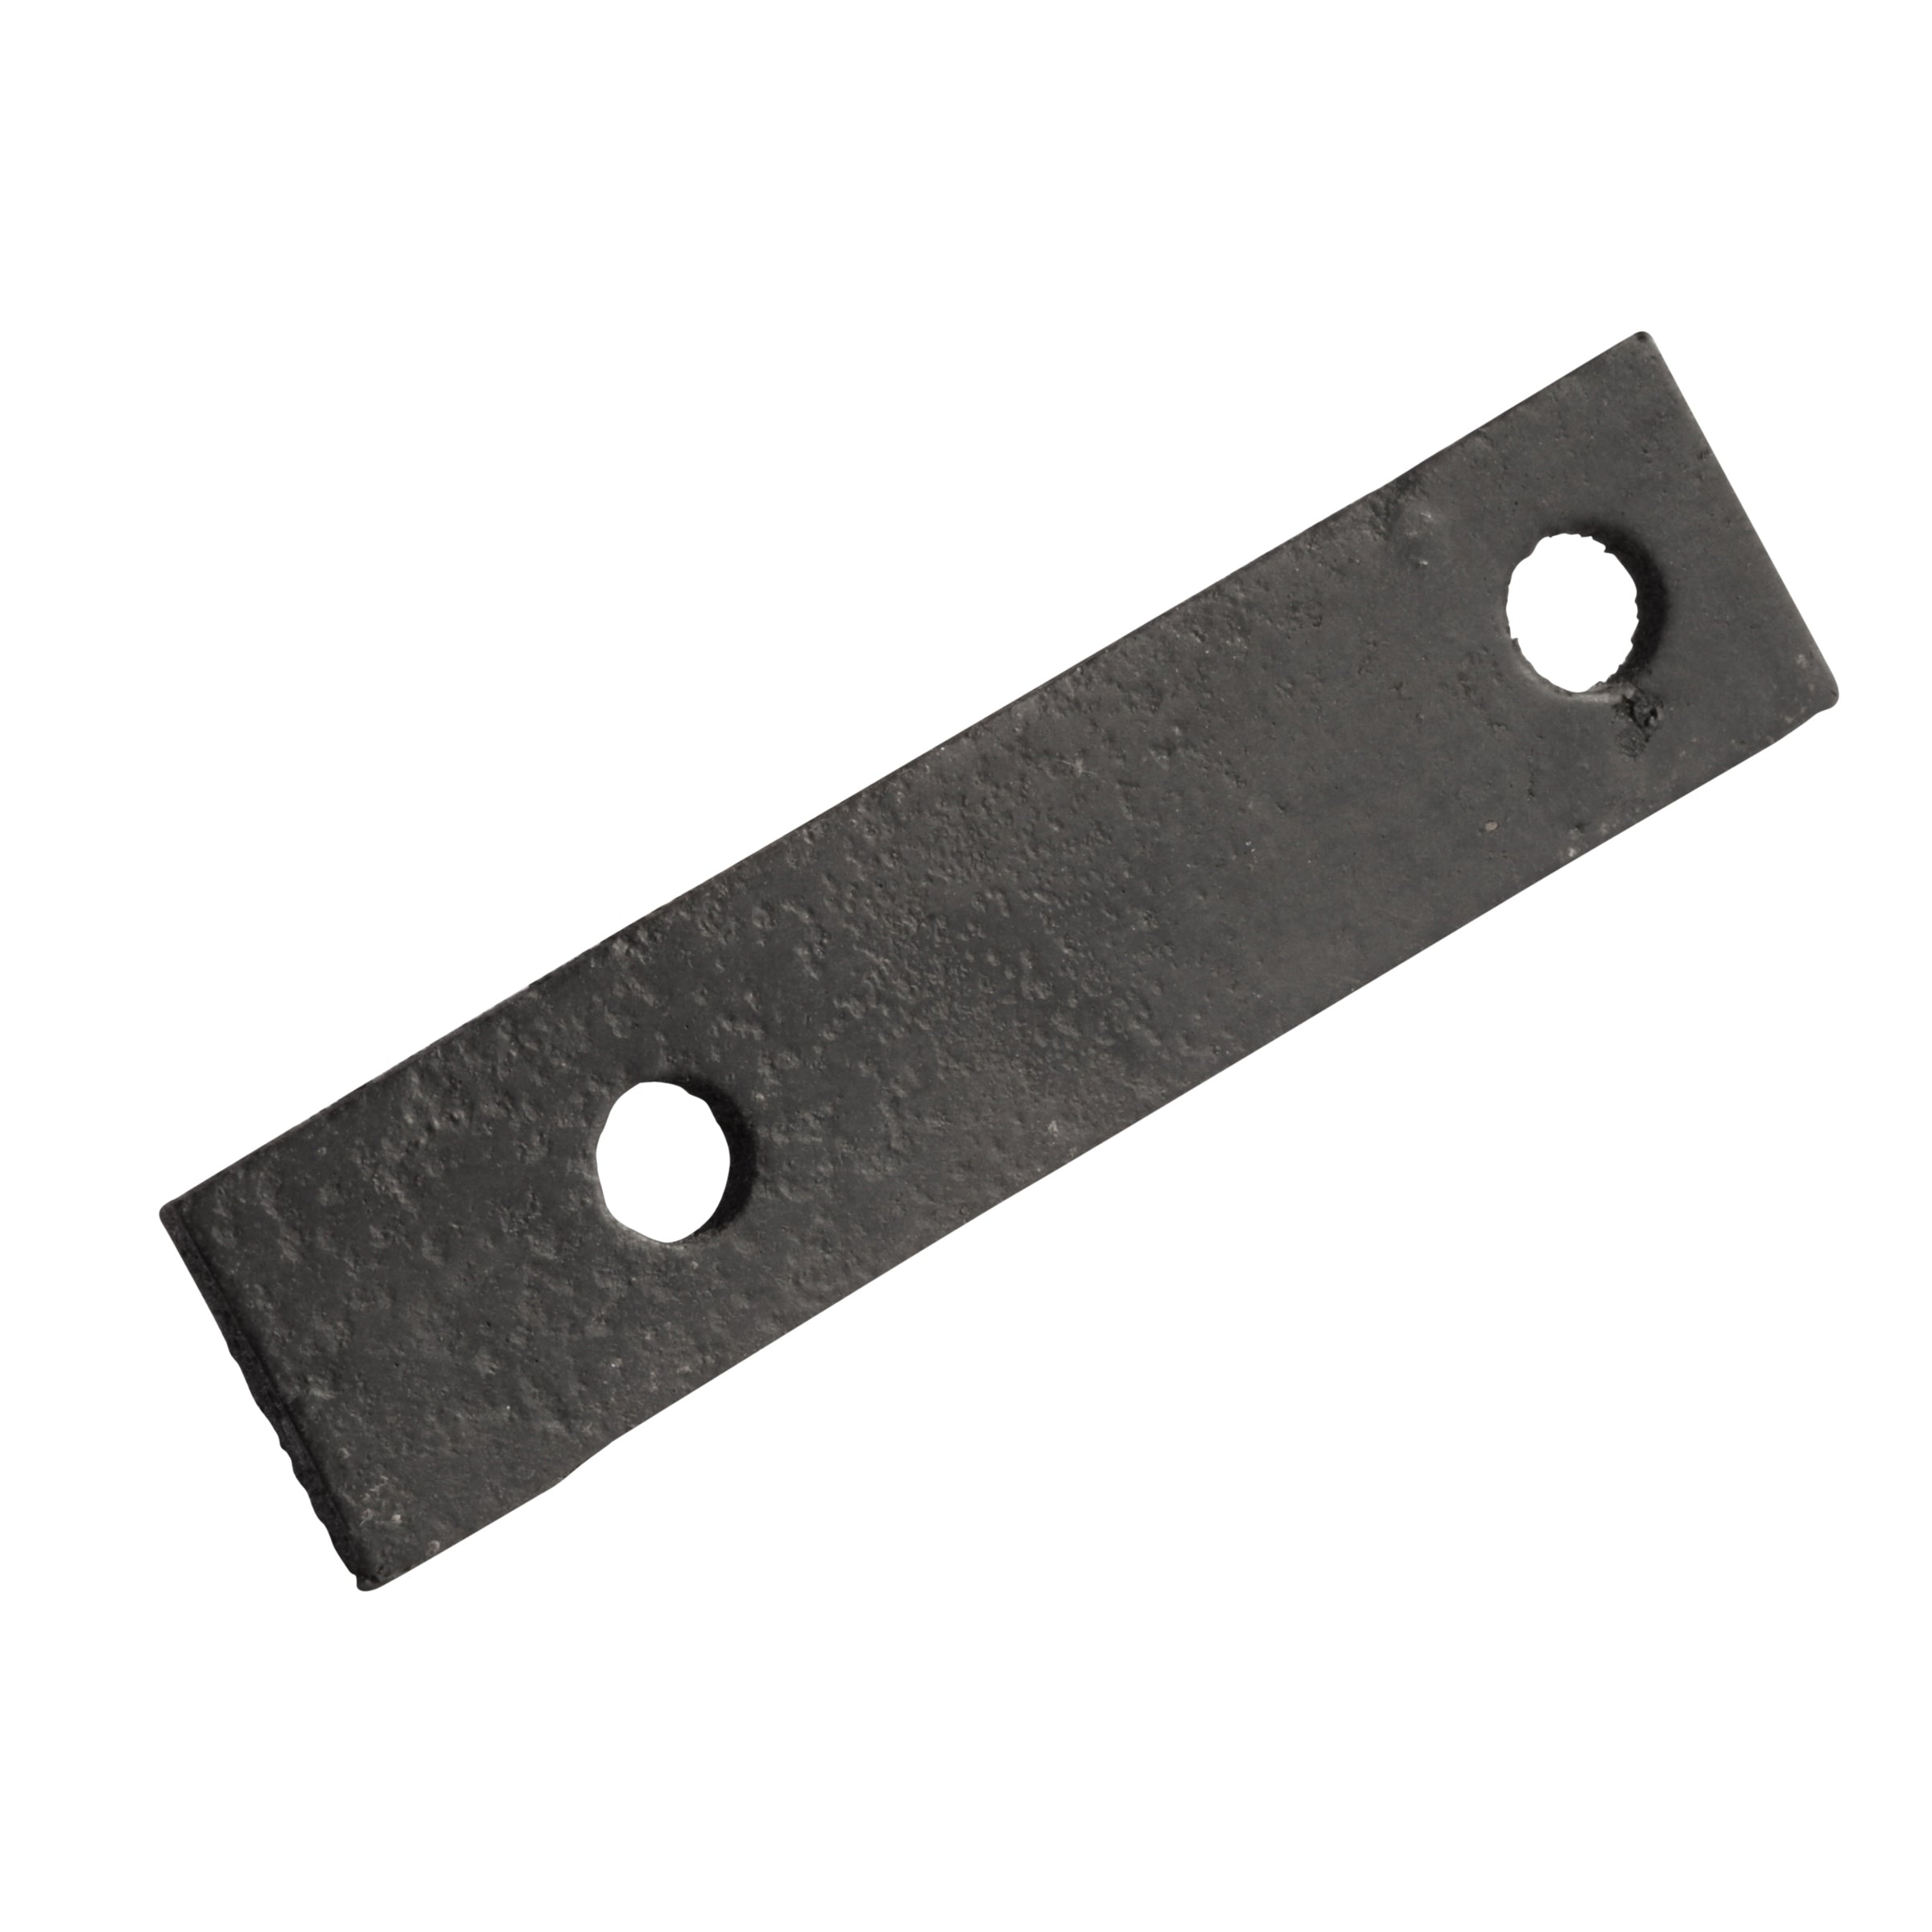 Ignition Lock Steering Rubber Shim • 1932 Ford